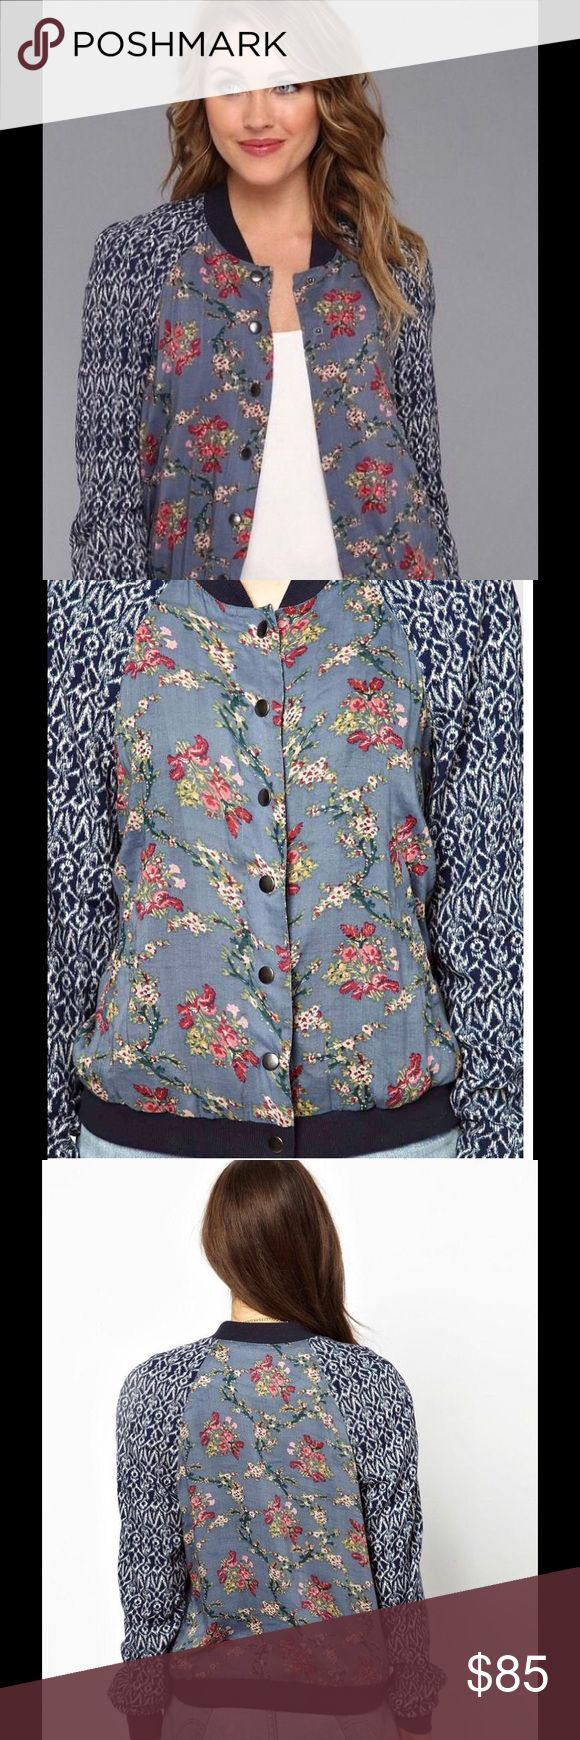 Free People Floral Printed Baseball Jacket Super cute and comfy, lightweight baseball jacket!  Satin lined.  Snap closure.  Navy color ribbed neck and cuffs.  No Trades.  Make an offer and/or request a bundle. Free People Jackets & Coats